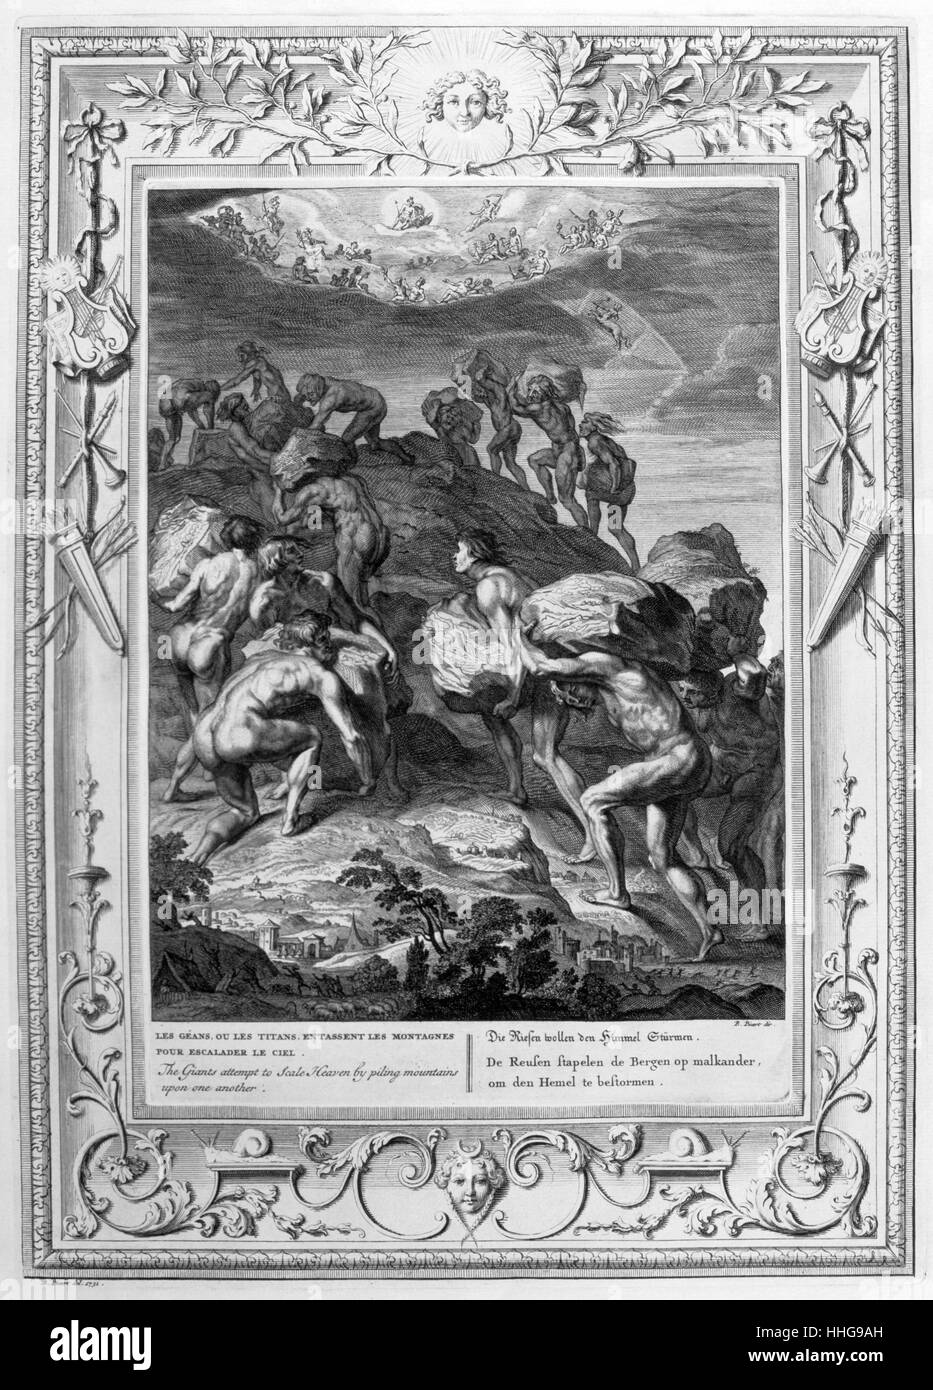 The Titans. Engraved illustration from 'The Temple of the Muses', 1733. - Stock Image